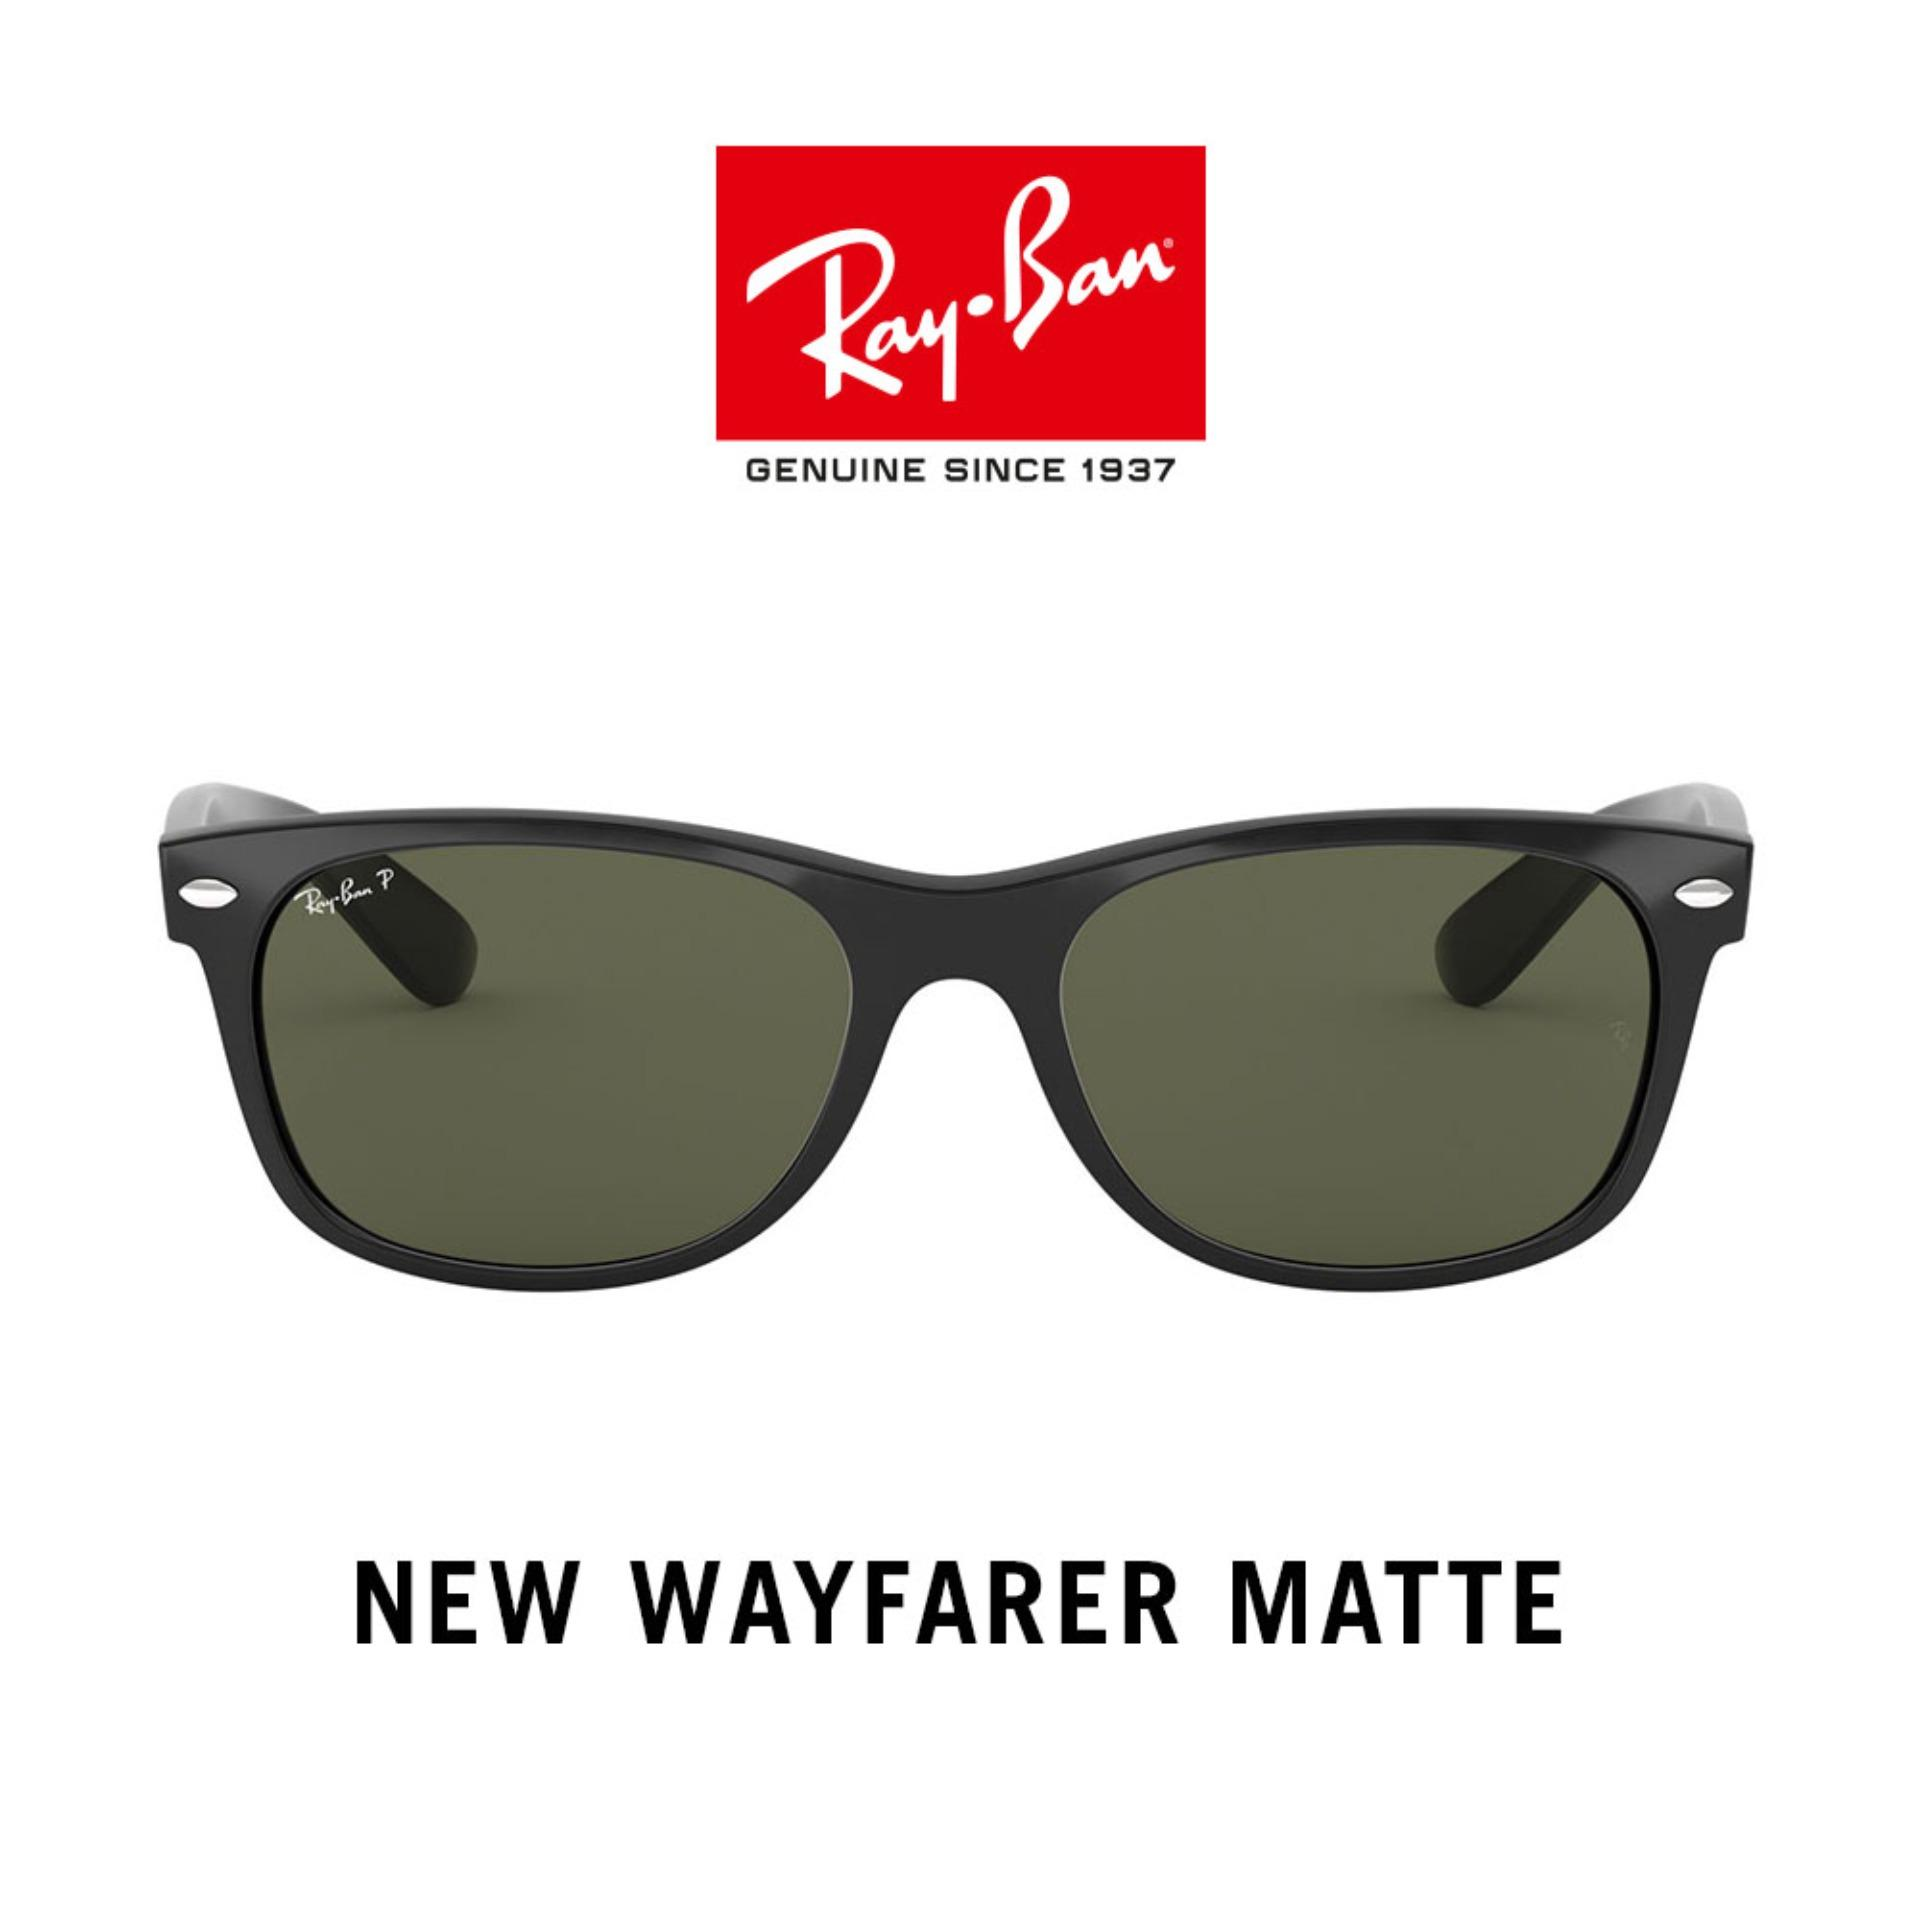 35aac8554e3 Ray Ban Philippines  Ray Ban price list - Shades   Sunglasses for ...